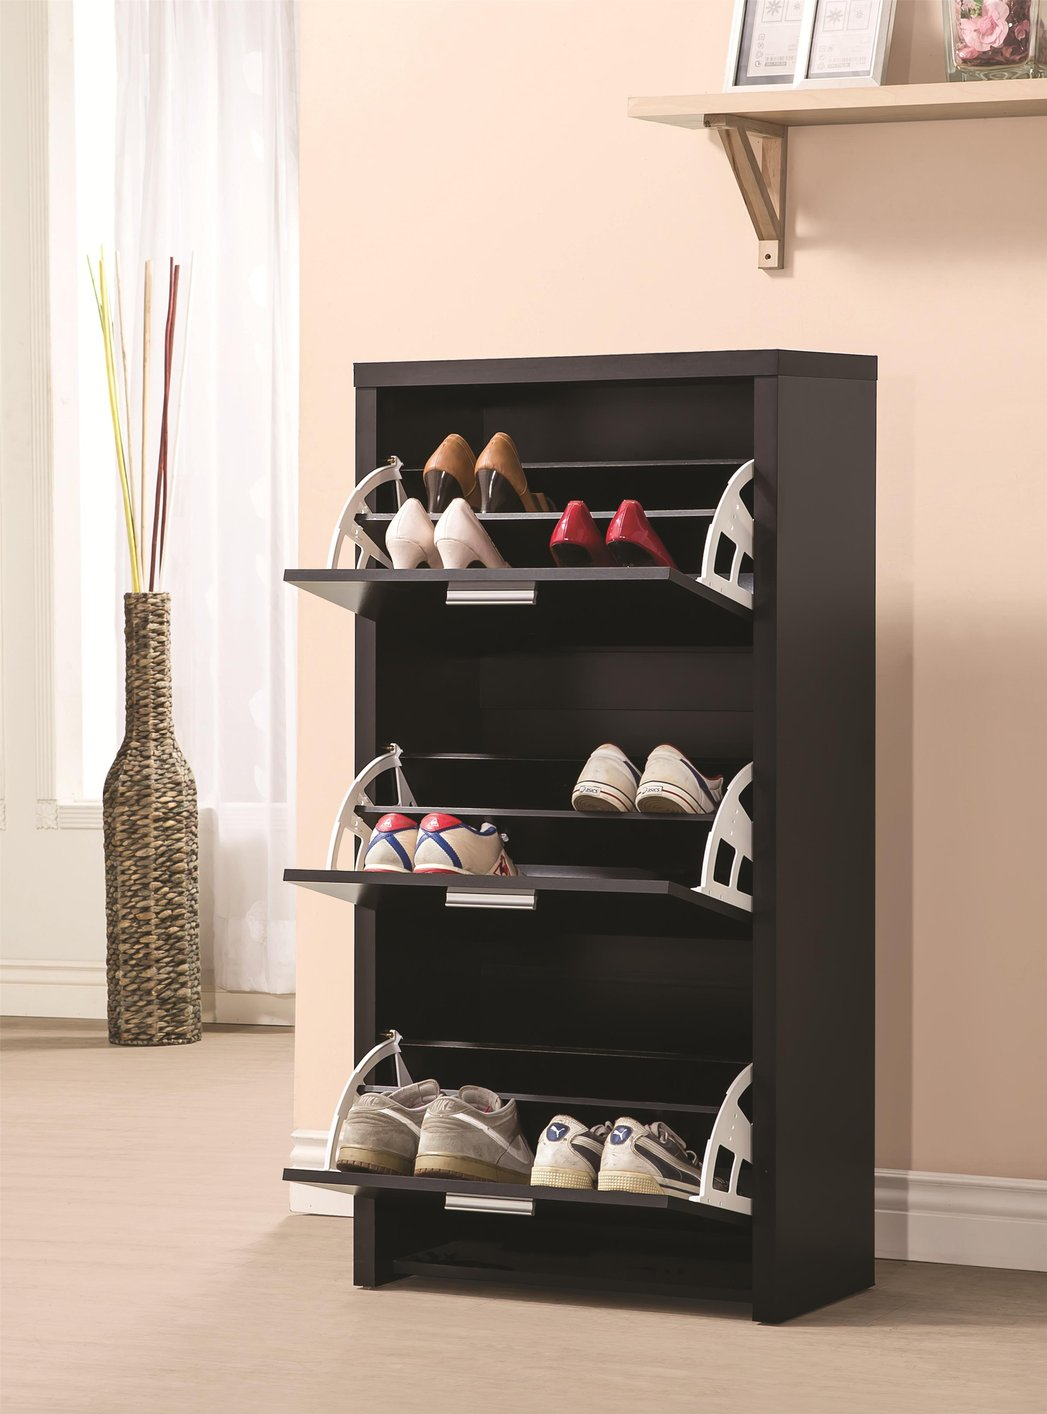 Black Wood Shoe Cabinet & Black Wood Shoe Cabinet - Steal-A-Sofa Furniture Outlet Los Angeles CA